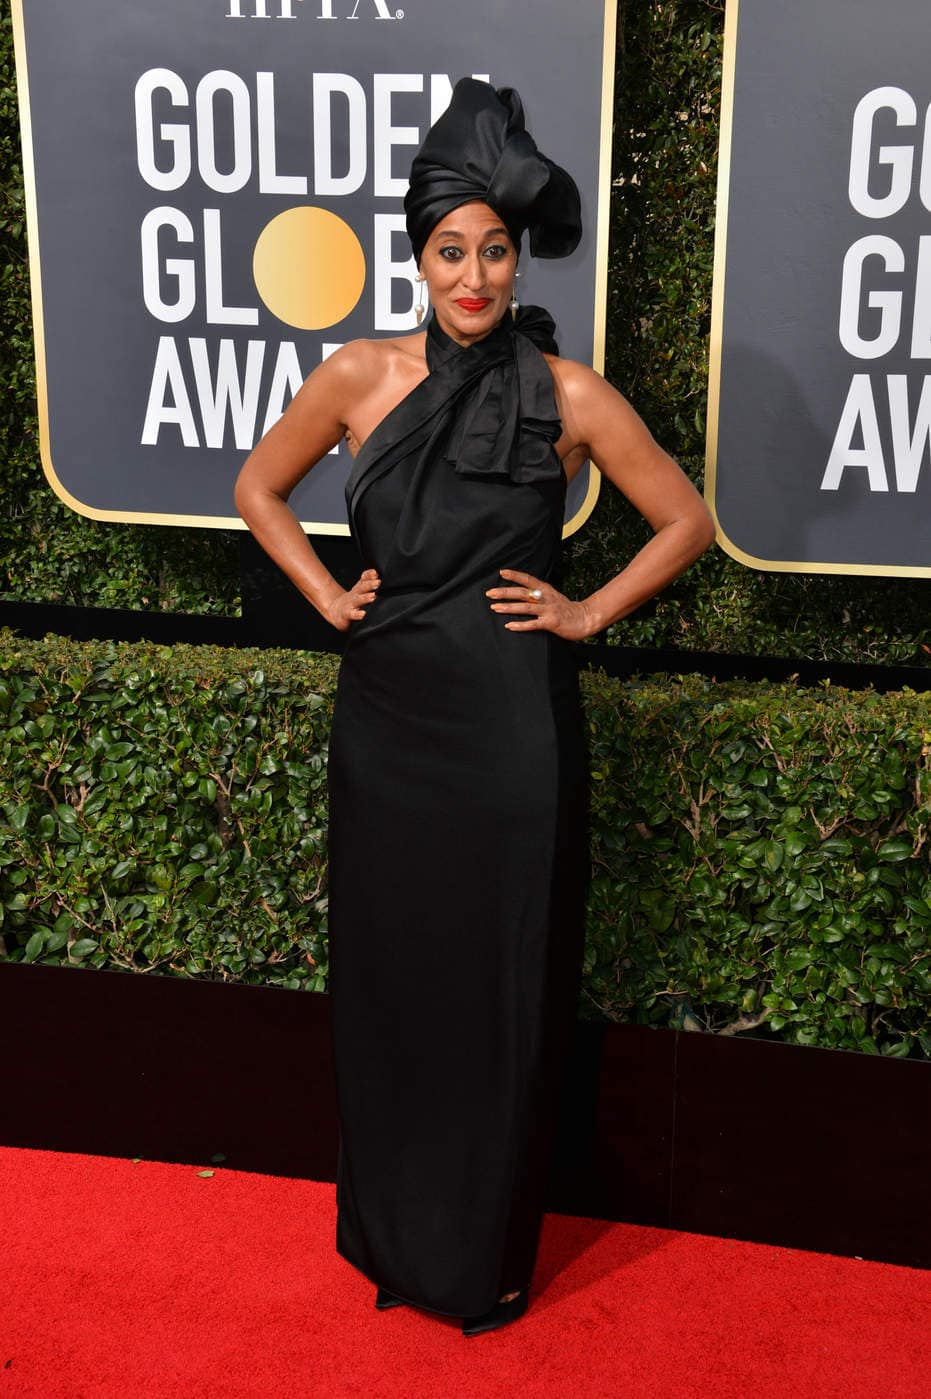 Tracee Ellis Ross in a black Marc Jacobs gown at the 2018 Golden Globe Awards red carpet